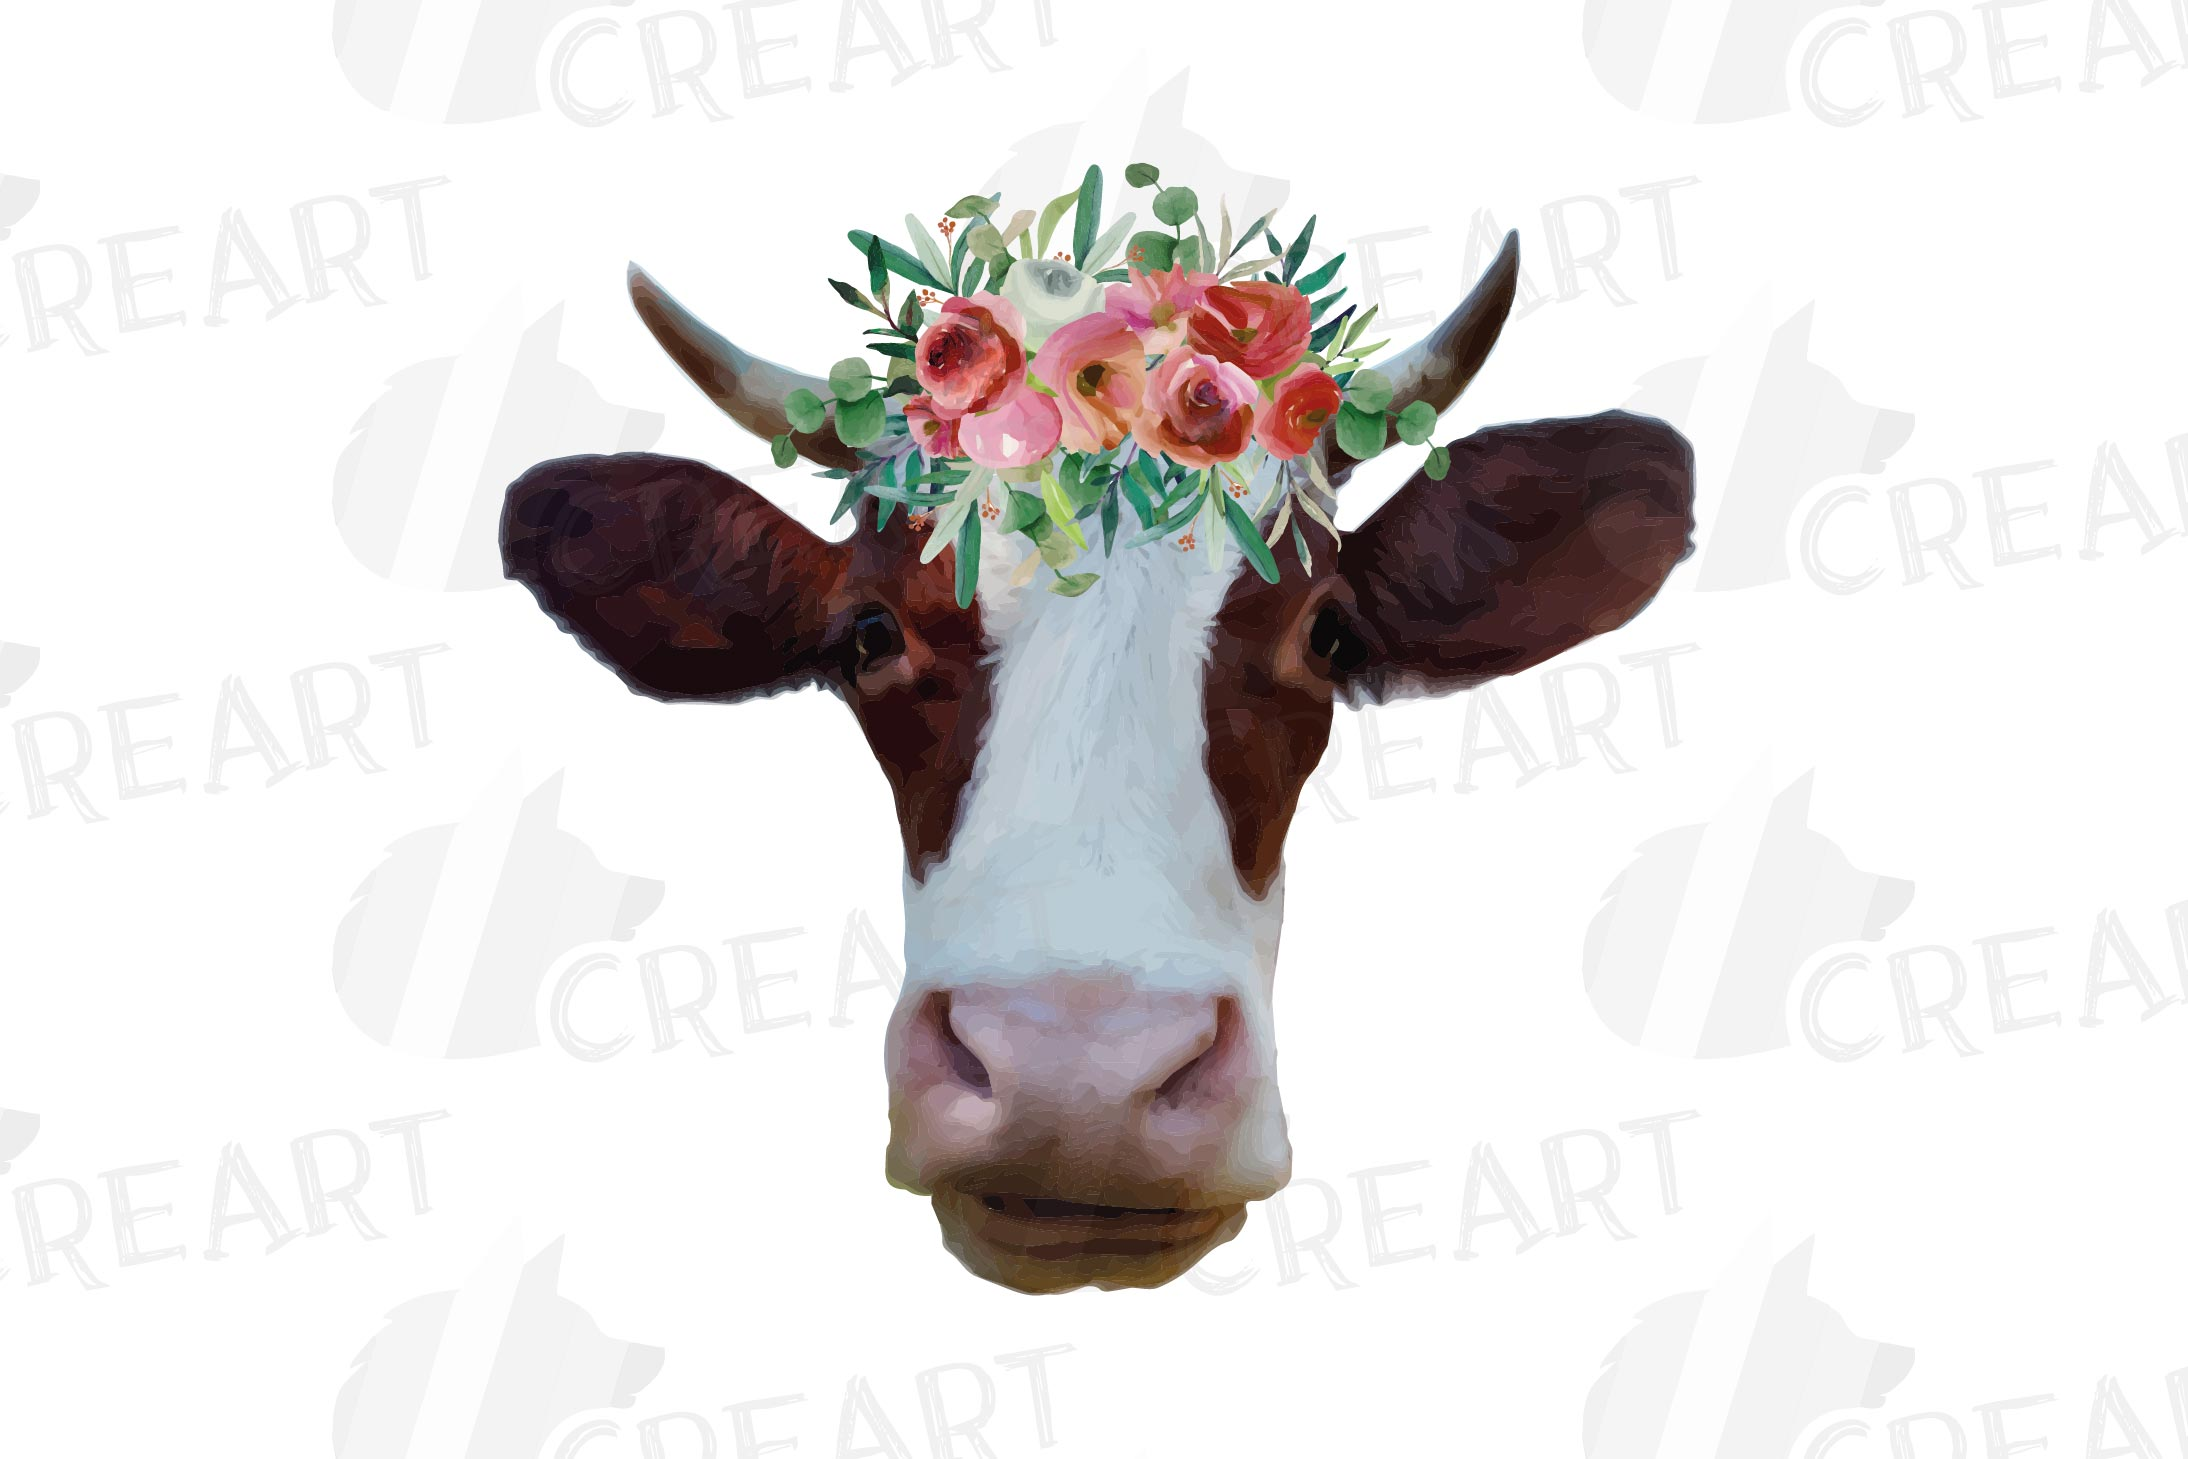 Cows with floral crown clip art. Not today heifer graphic example image 7